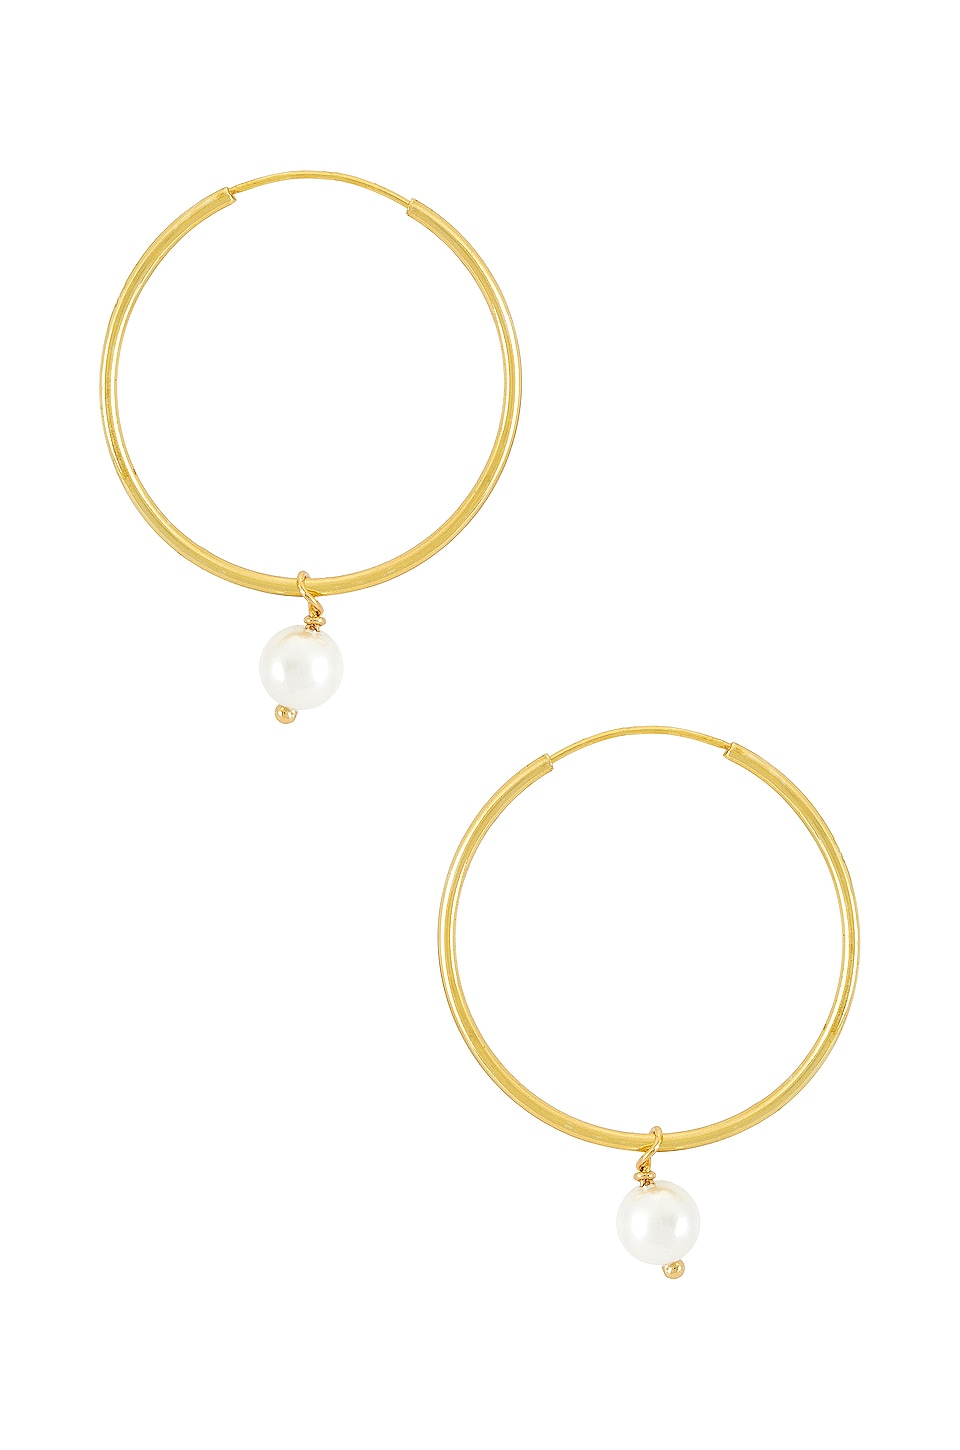 The M Jewelers NY The Hanging Lia Pearl Earrings in Gold